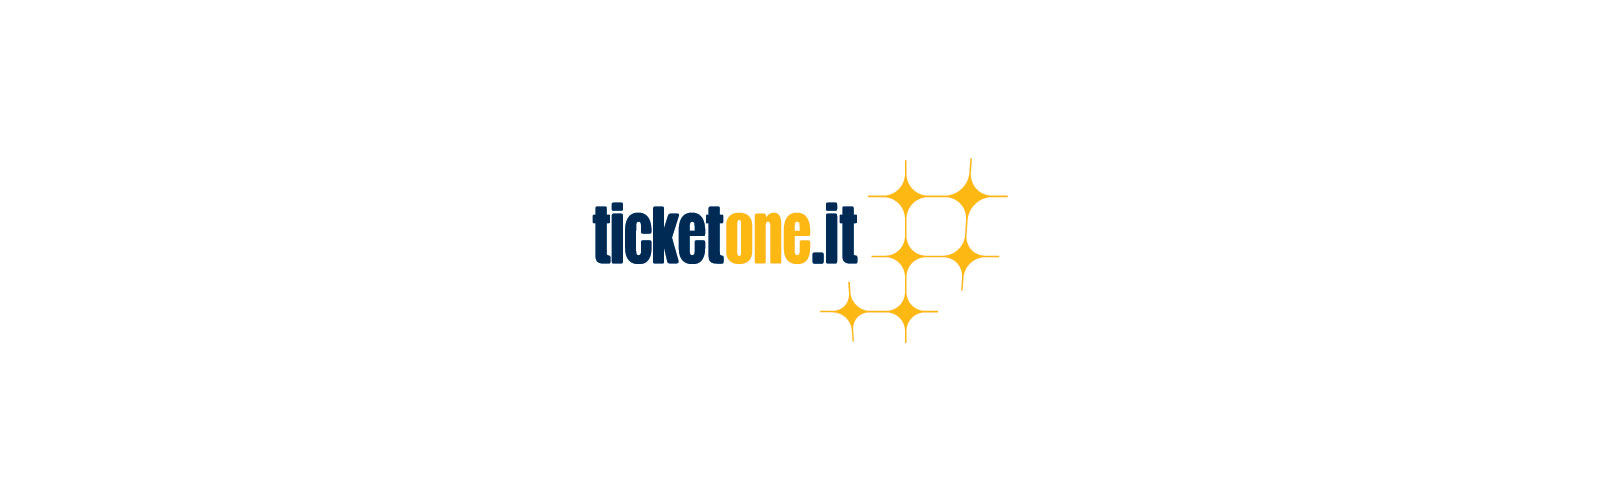 ticketone-it